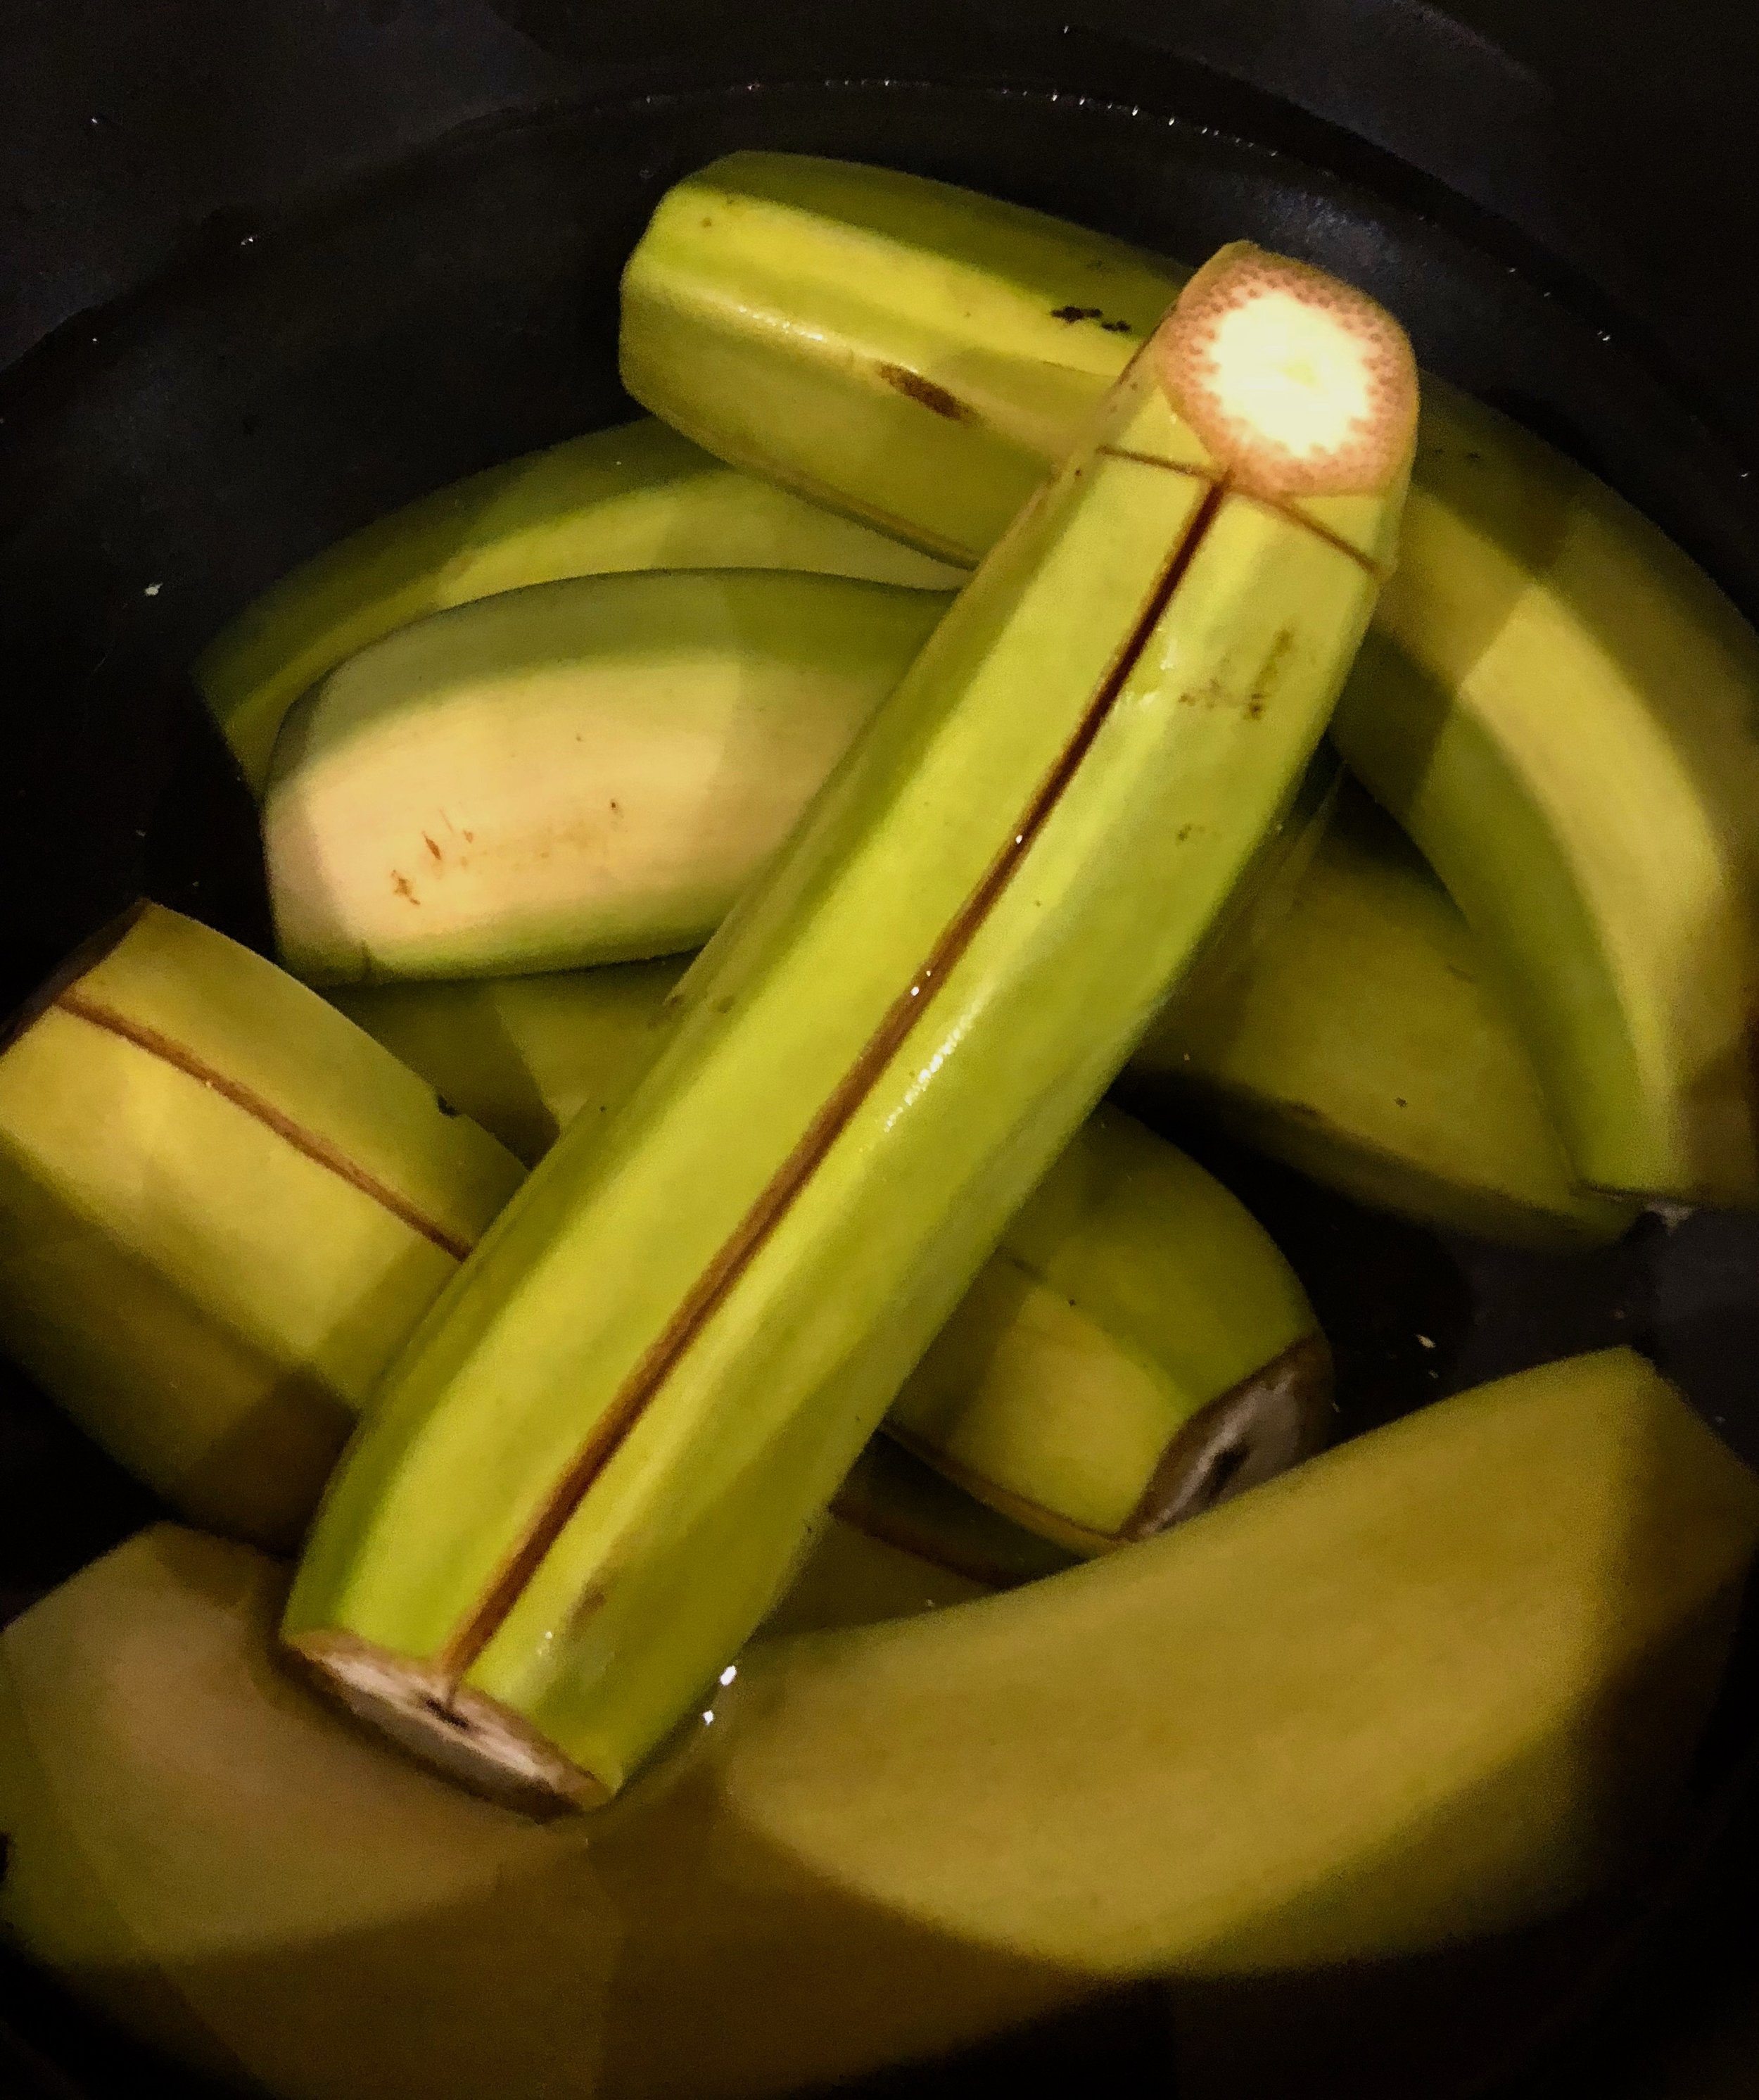 To prepare bananas before boiling, cut off both ends of the bananas and score the skin down the middle.